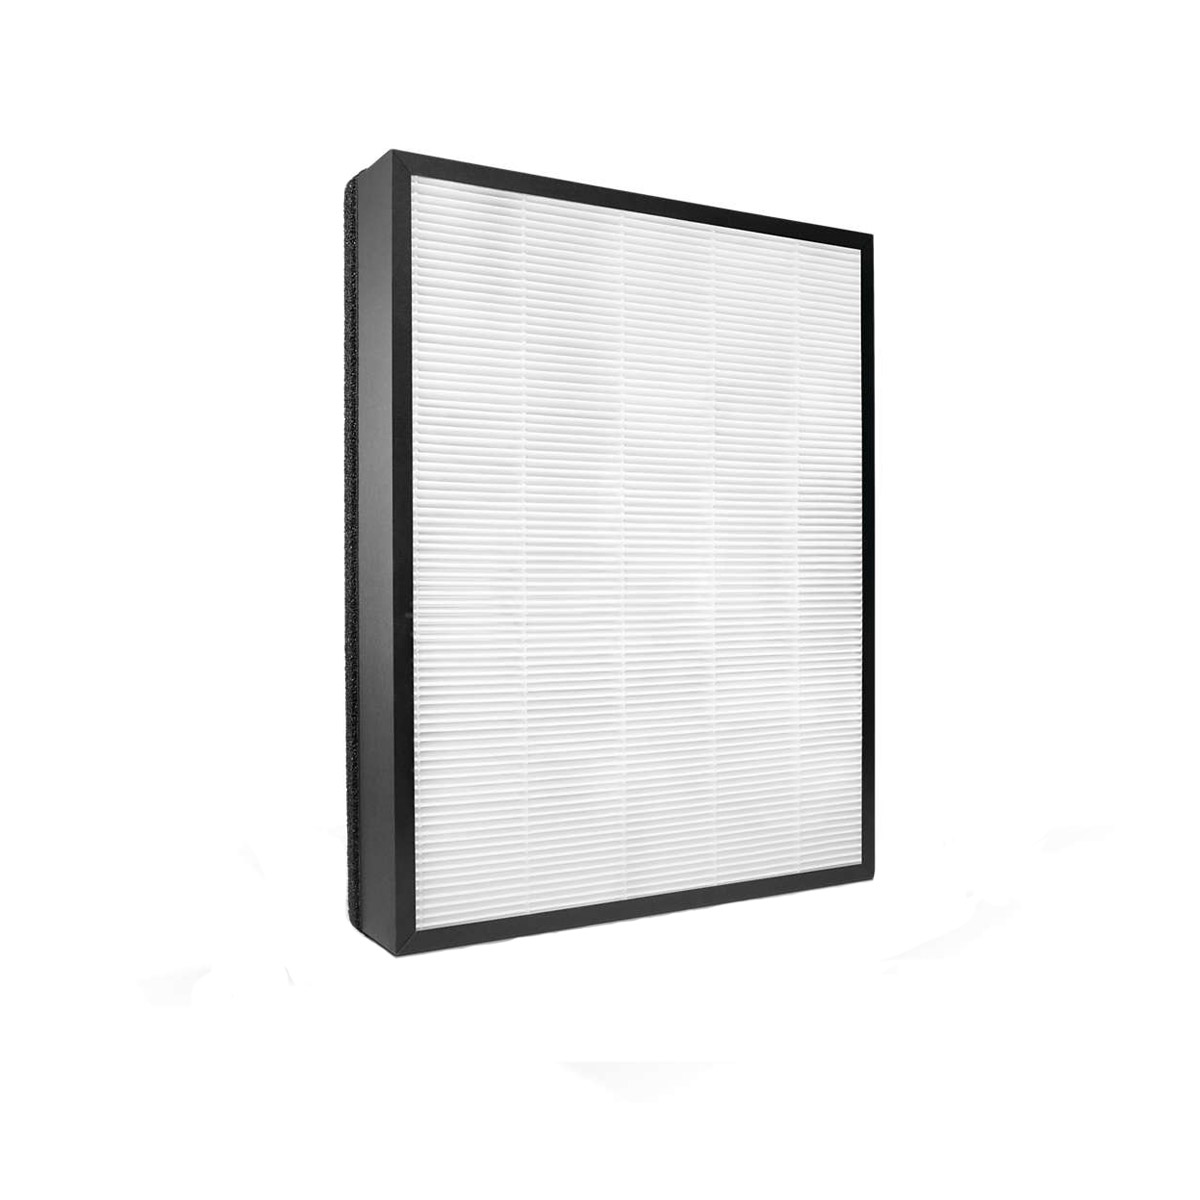 Philips NanoProtect HEPA Series 3000 Replacement Filter